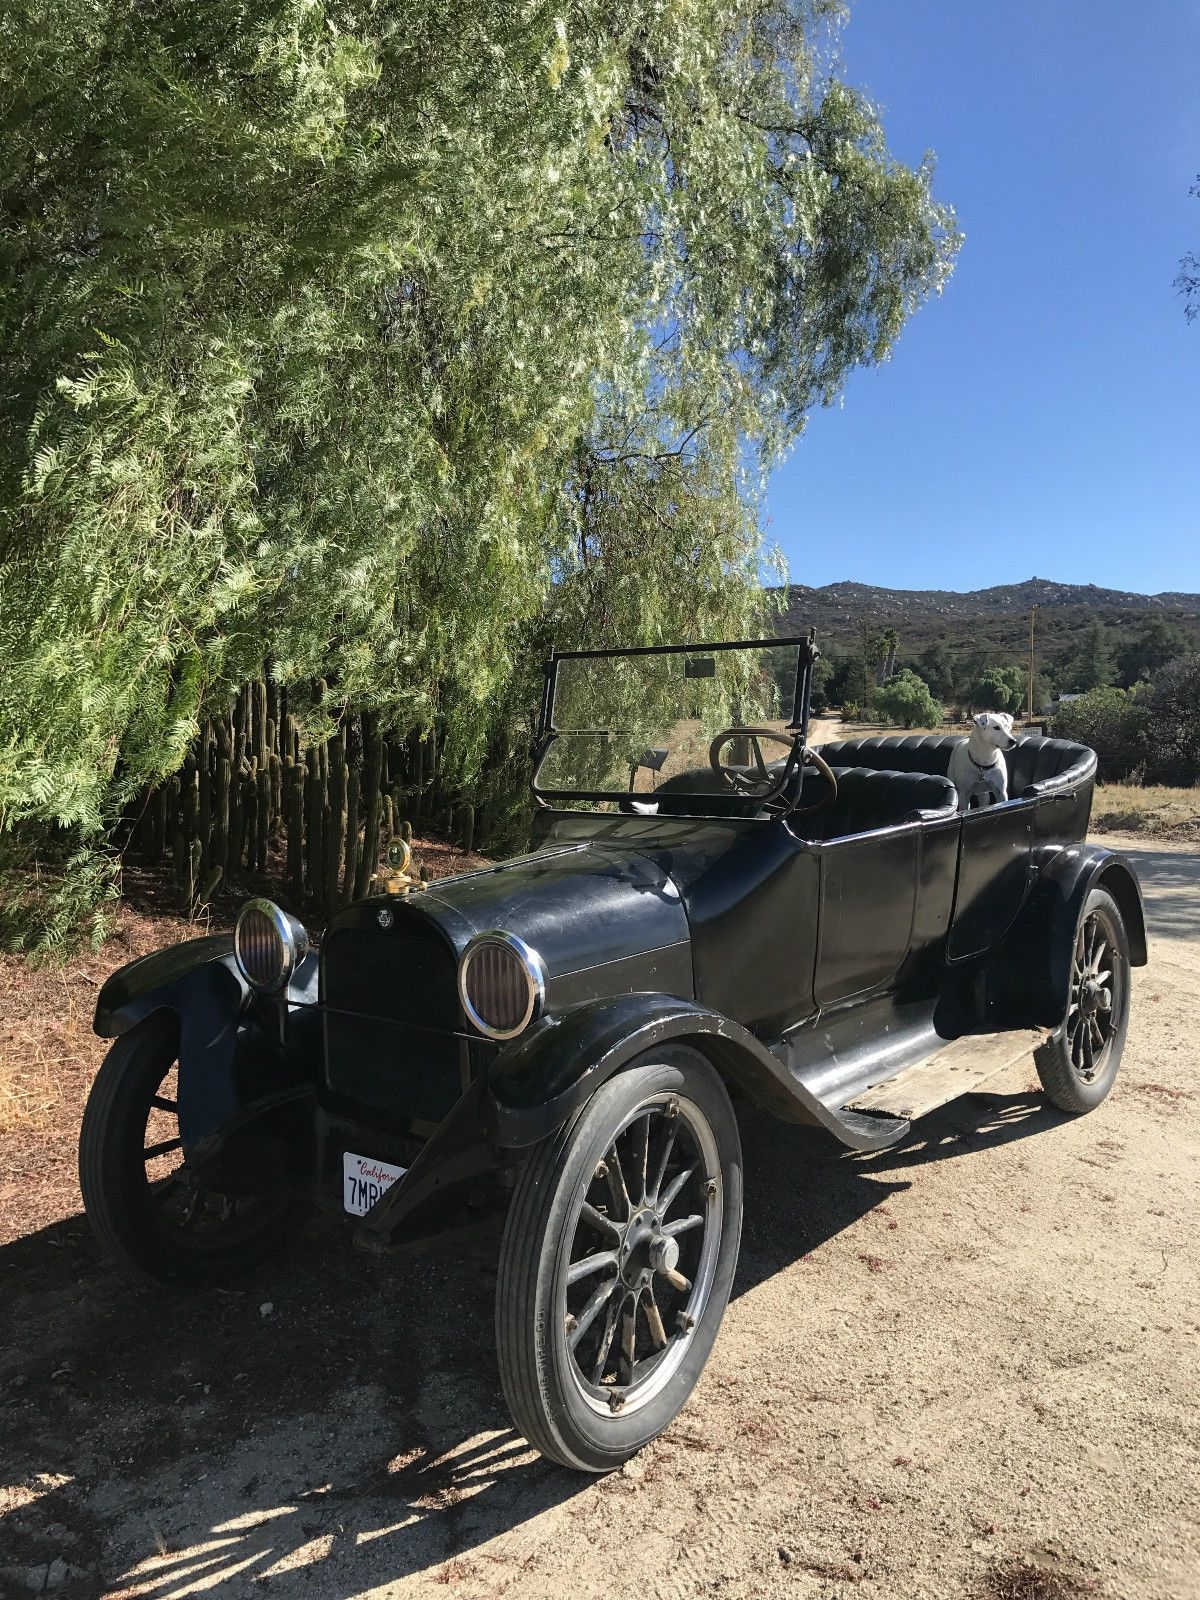 1919 Dodge Dodge Brothers Touring Touring Car | Motor car and Cars